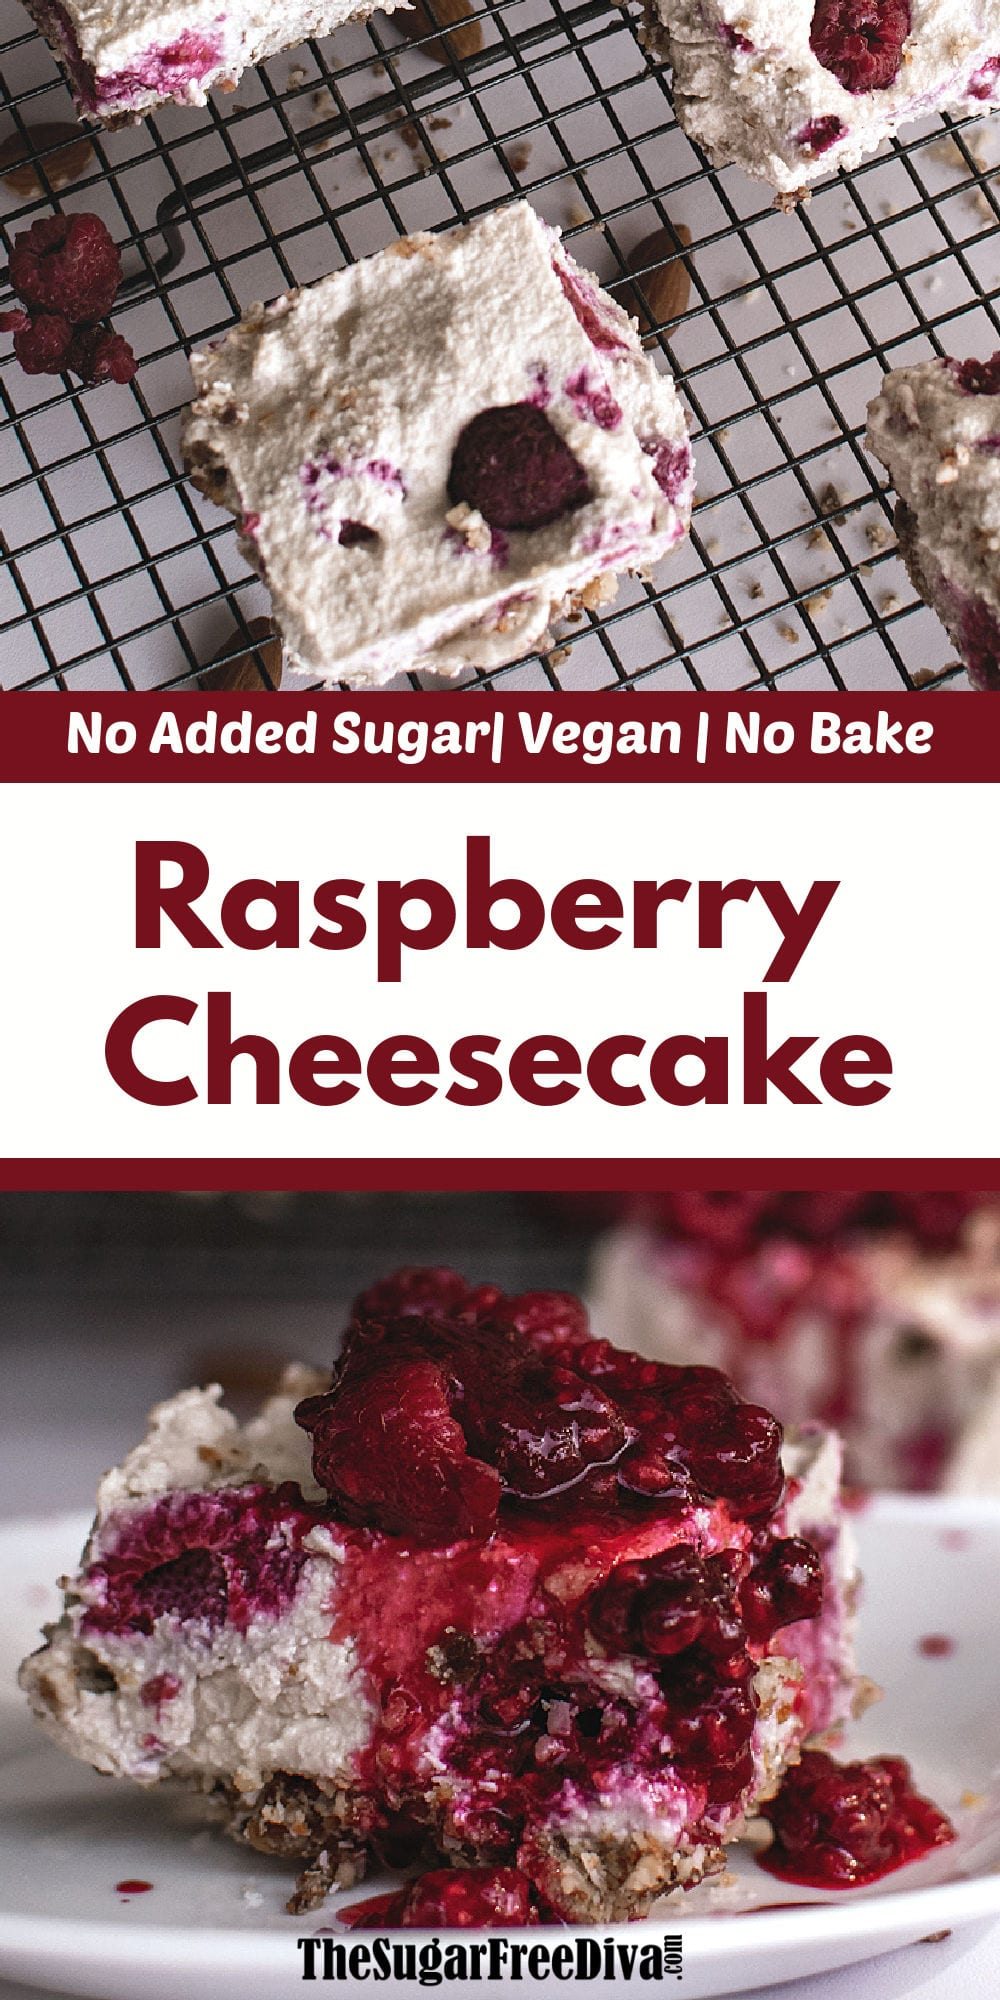 No Added Sugar Vegan No Bake Cheesecake